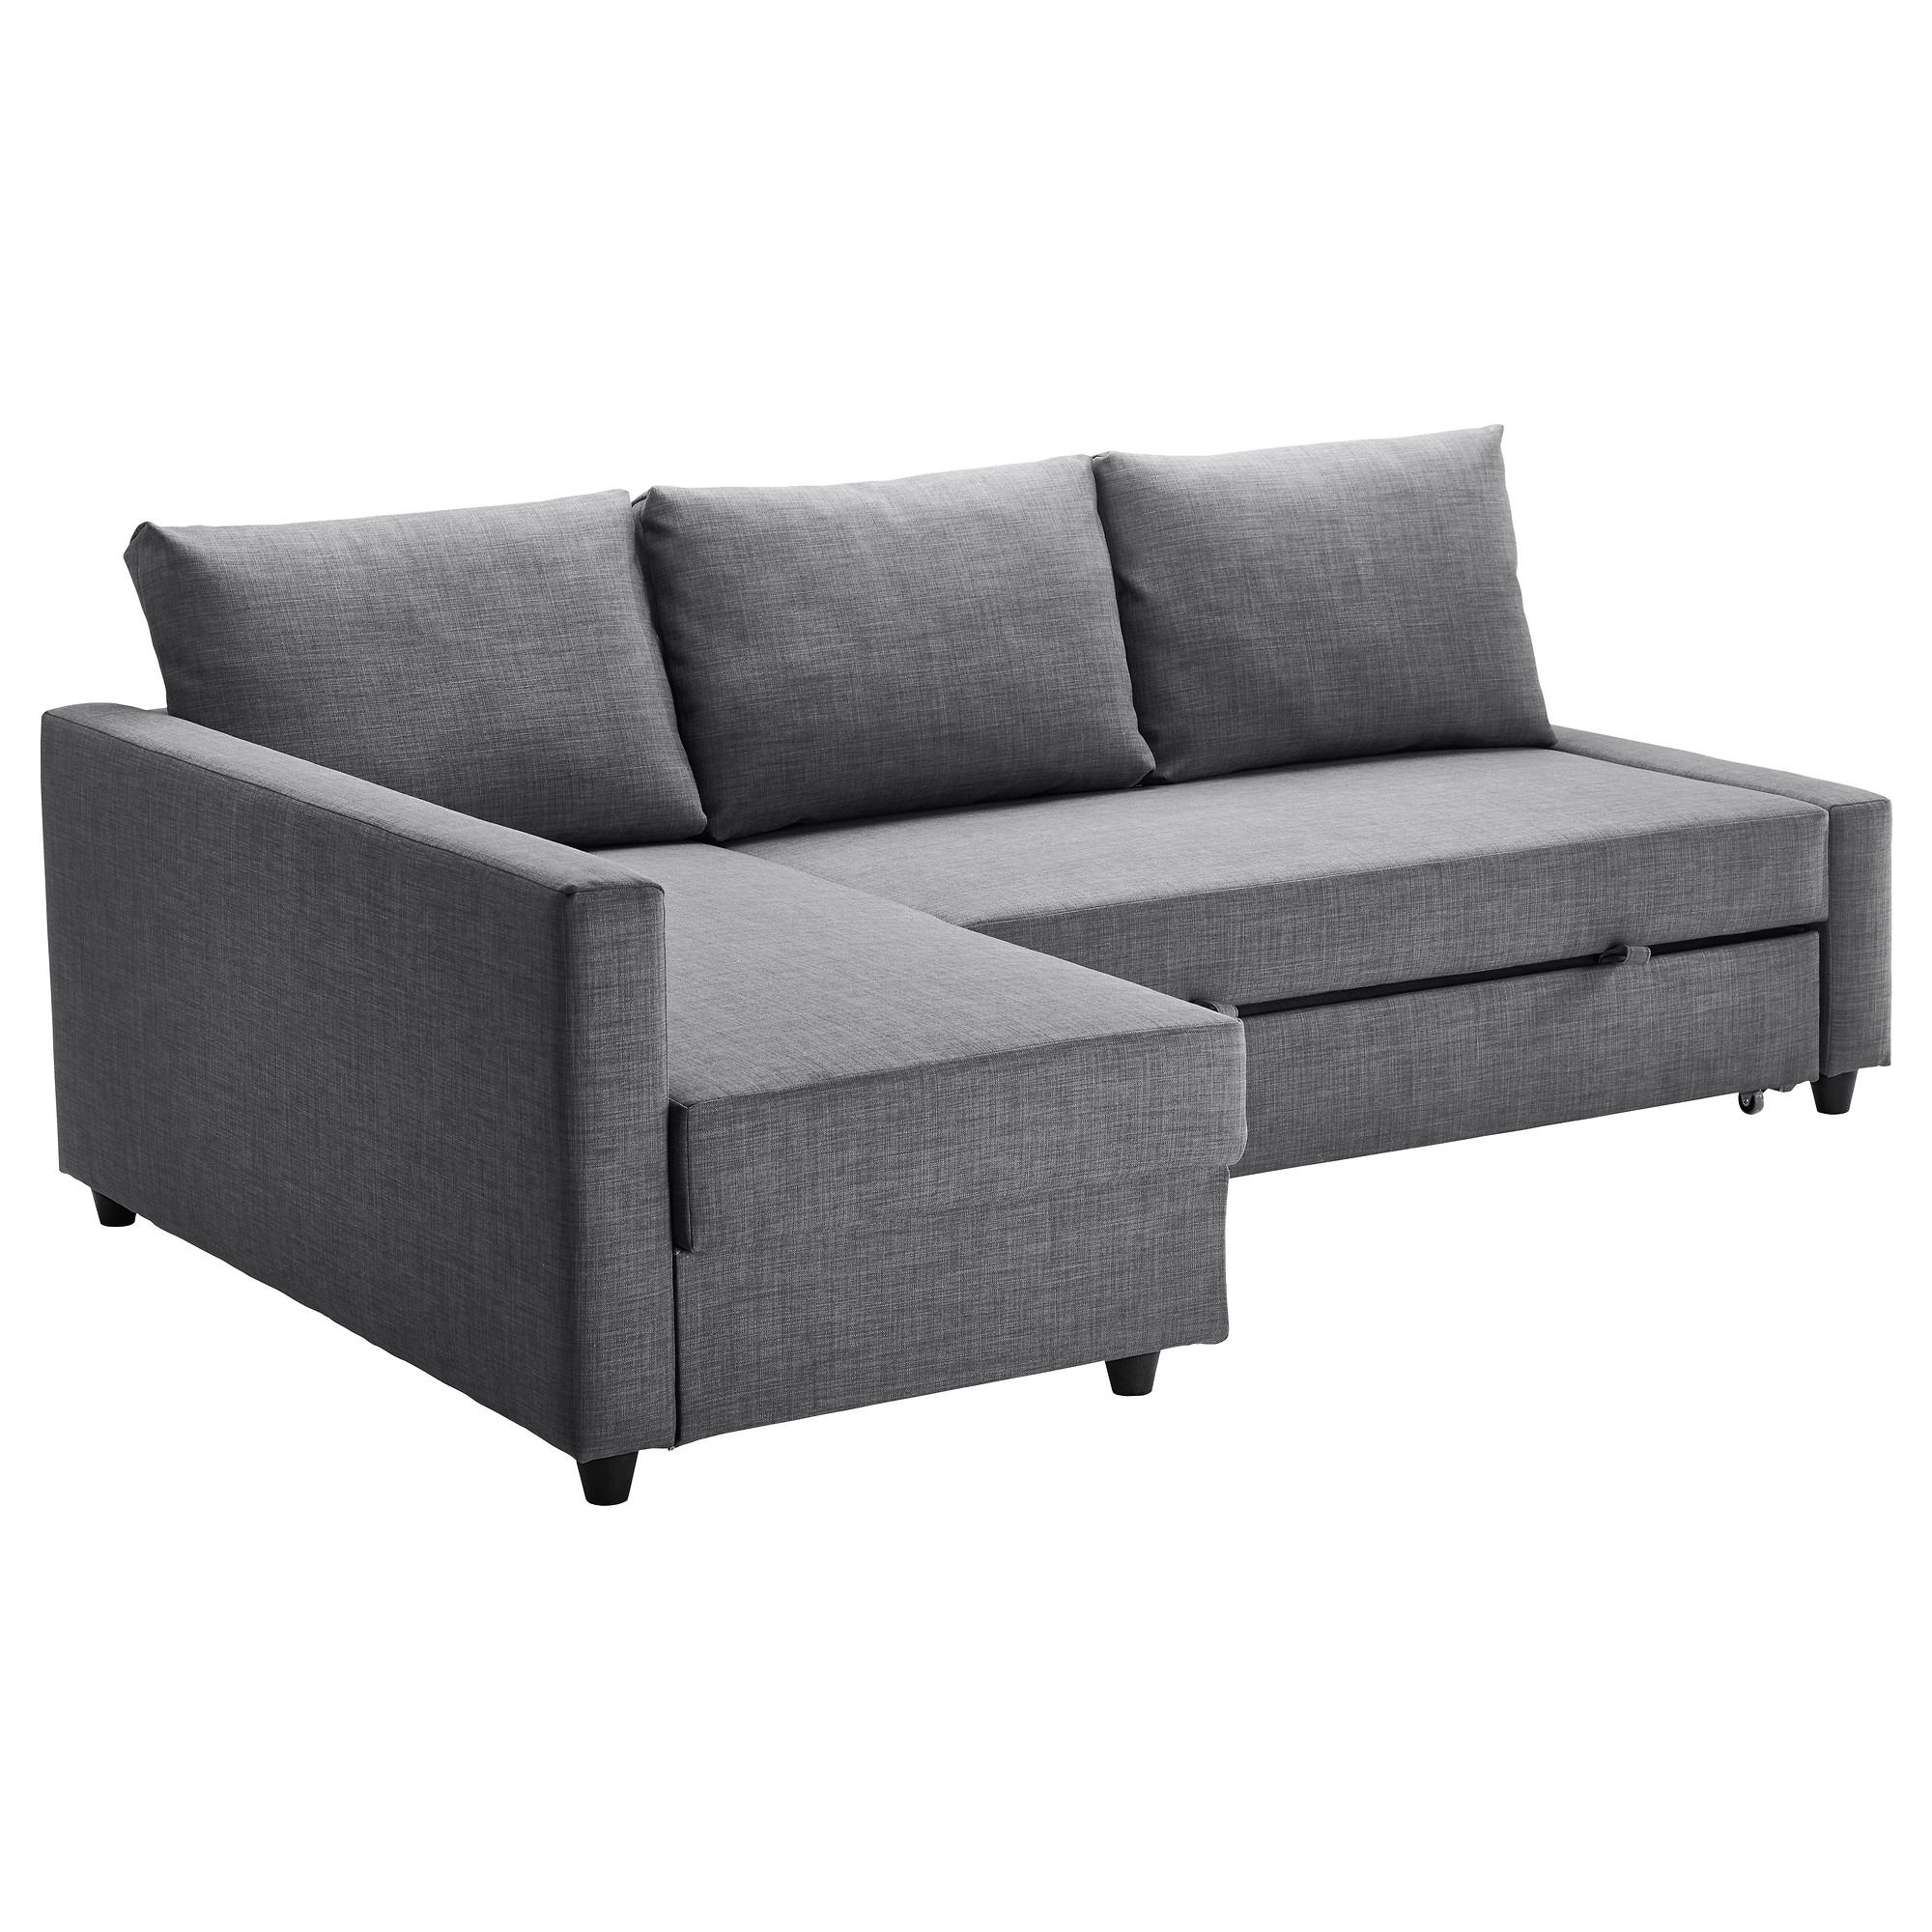 Widely Used Ikea Lithuania – Shop For Furniture, Lighting, Home Accessories & More Pertaining To Ikea Sofa Chairs (View 20 of 20)